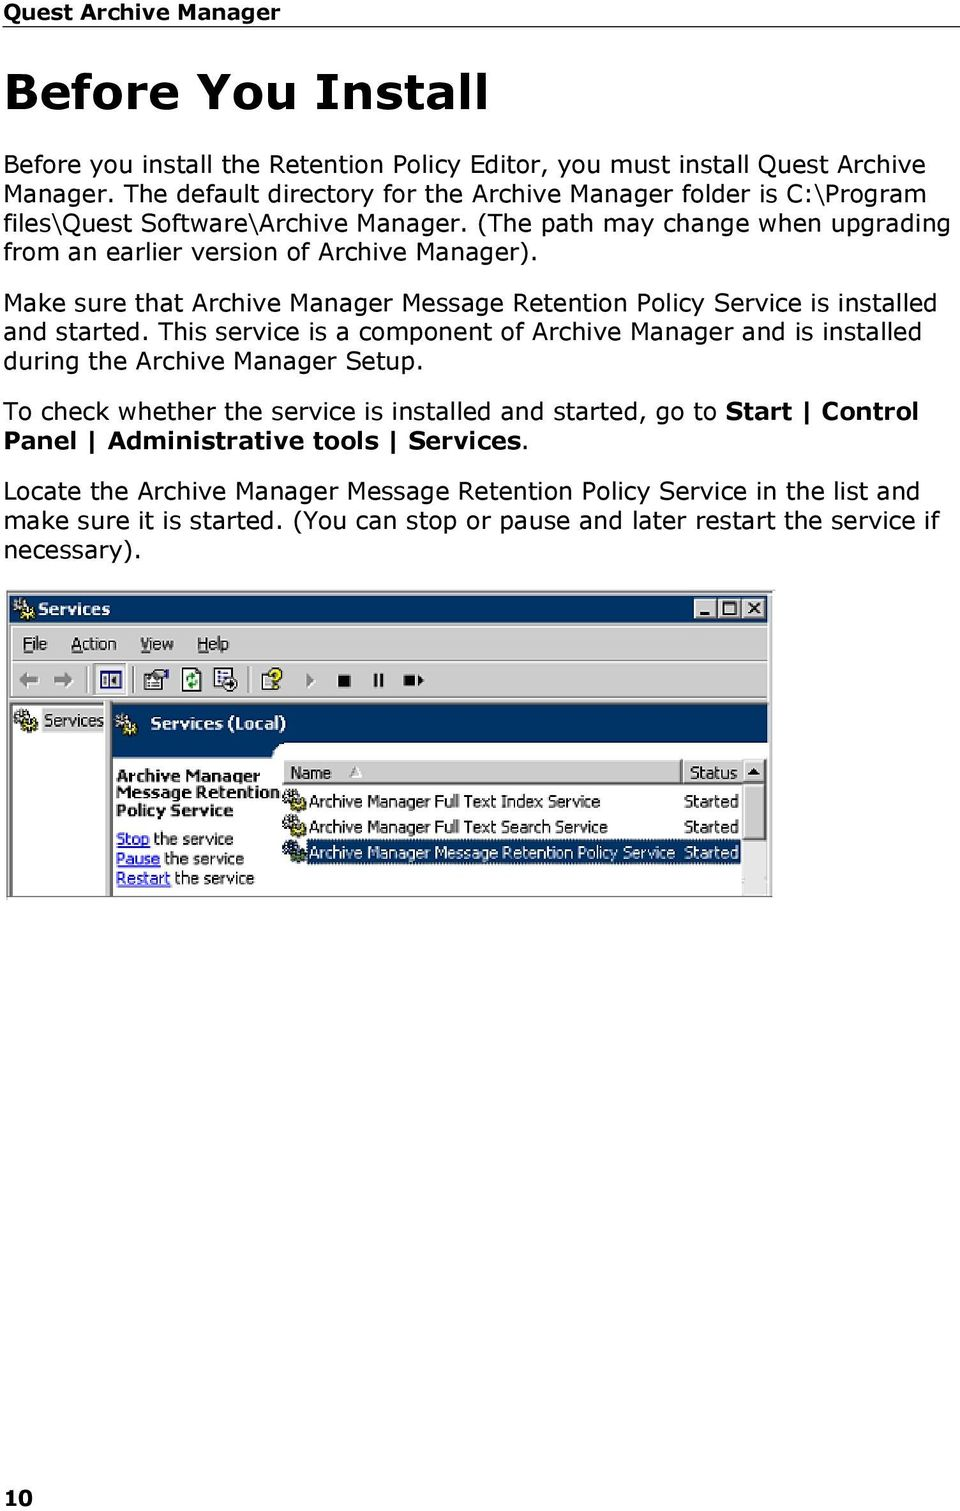 Make sure that Archive Manager Message Retention Policy Service is installed and started. This service is a component of Archive Manager and is installed during the Archive Manager Setup.